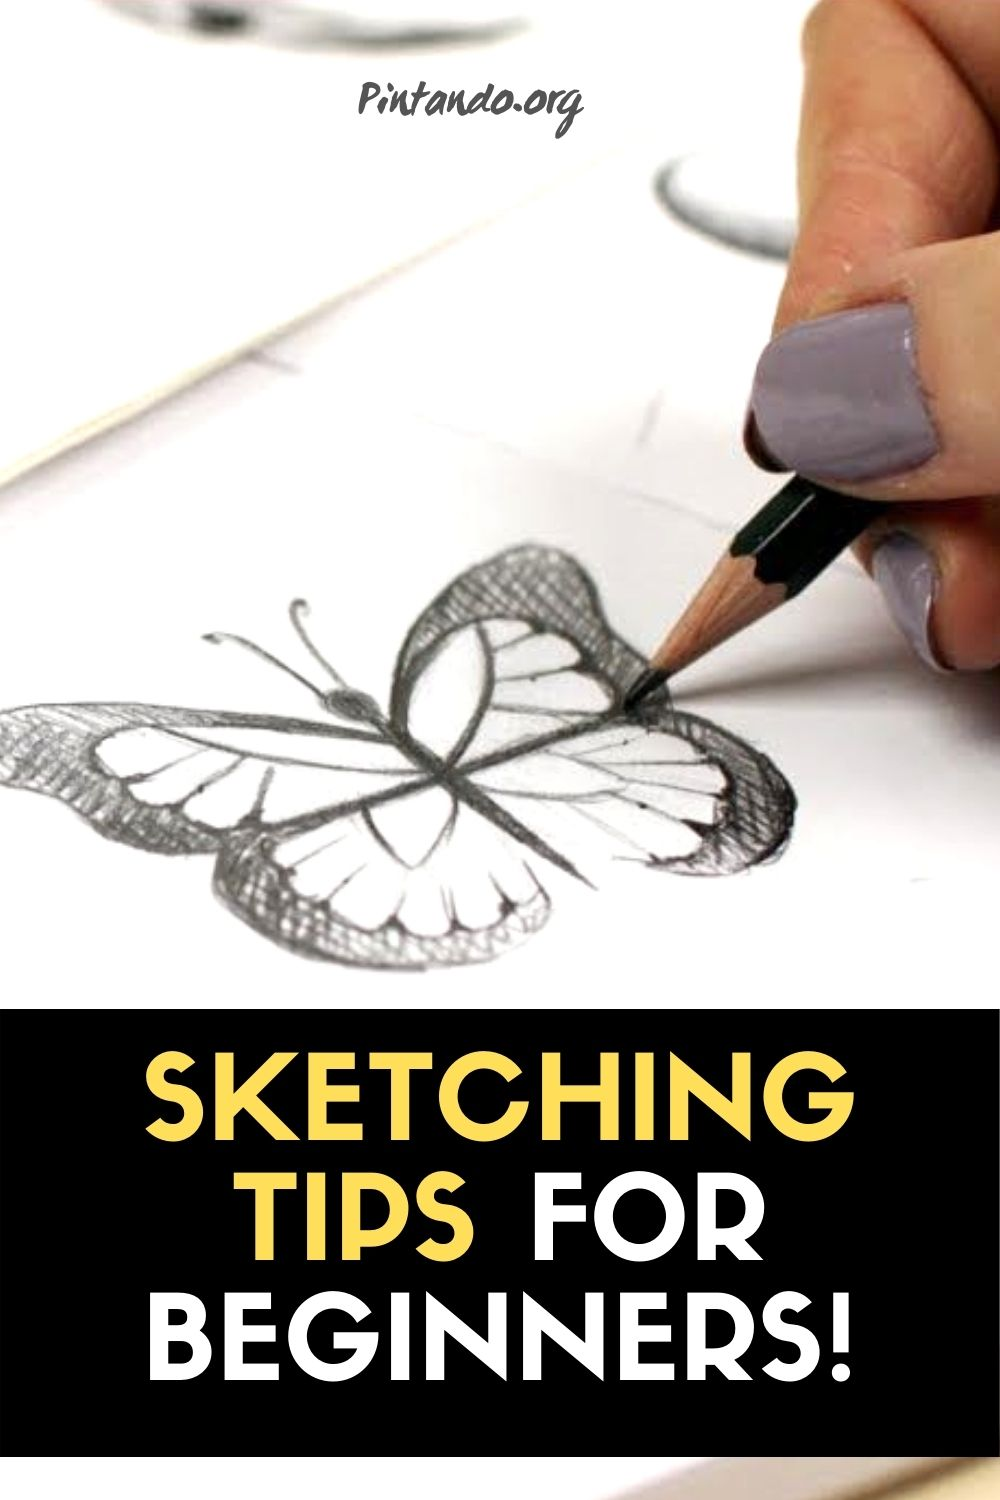 How to Sketch